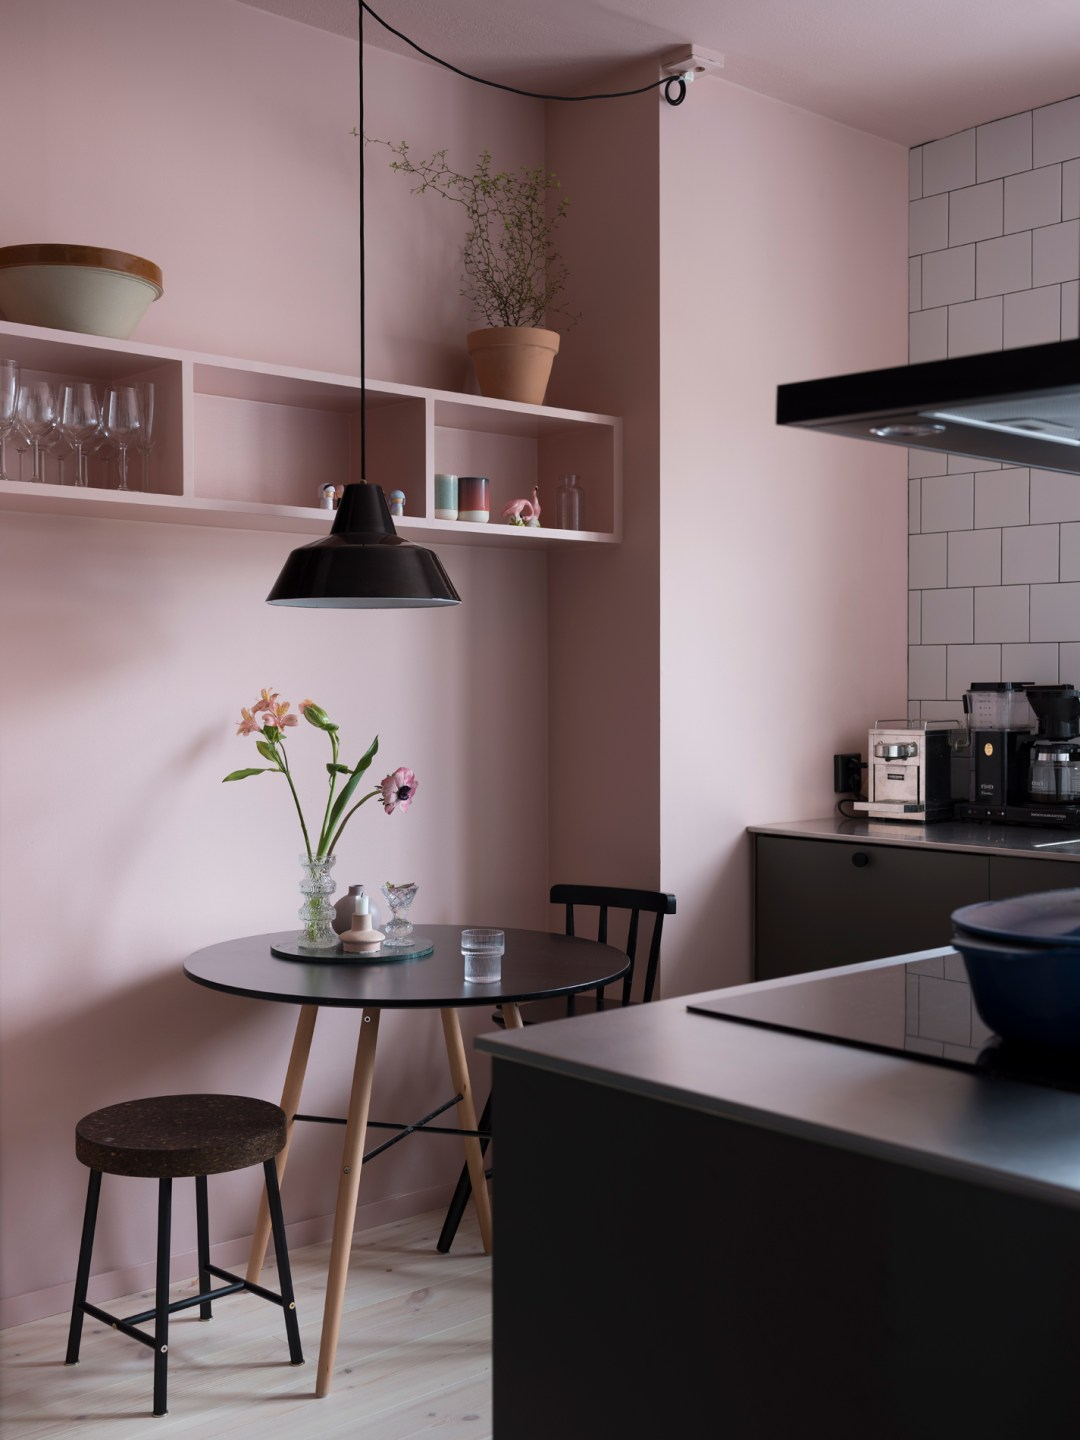 Simple and modern pink kitchen - Warm up your home with pink wall colour | Aliz's Wonderland